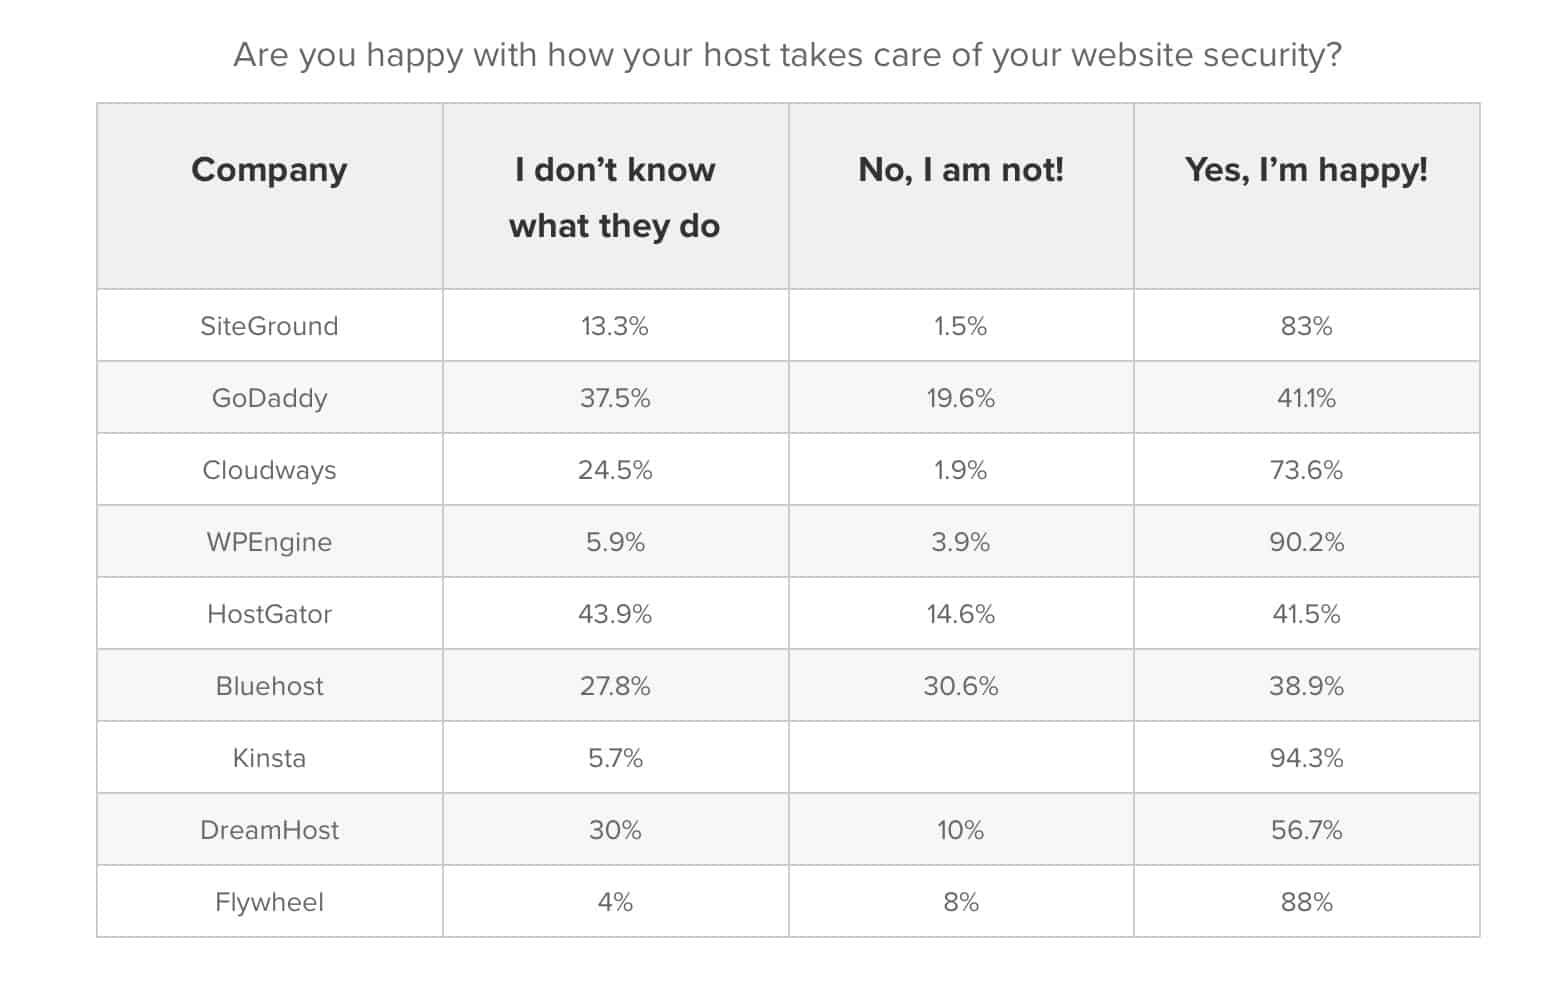 Kinsta Web Security Client Satisfaction